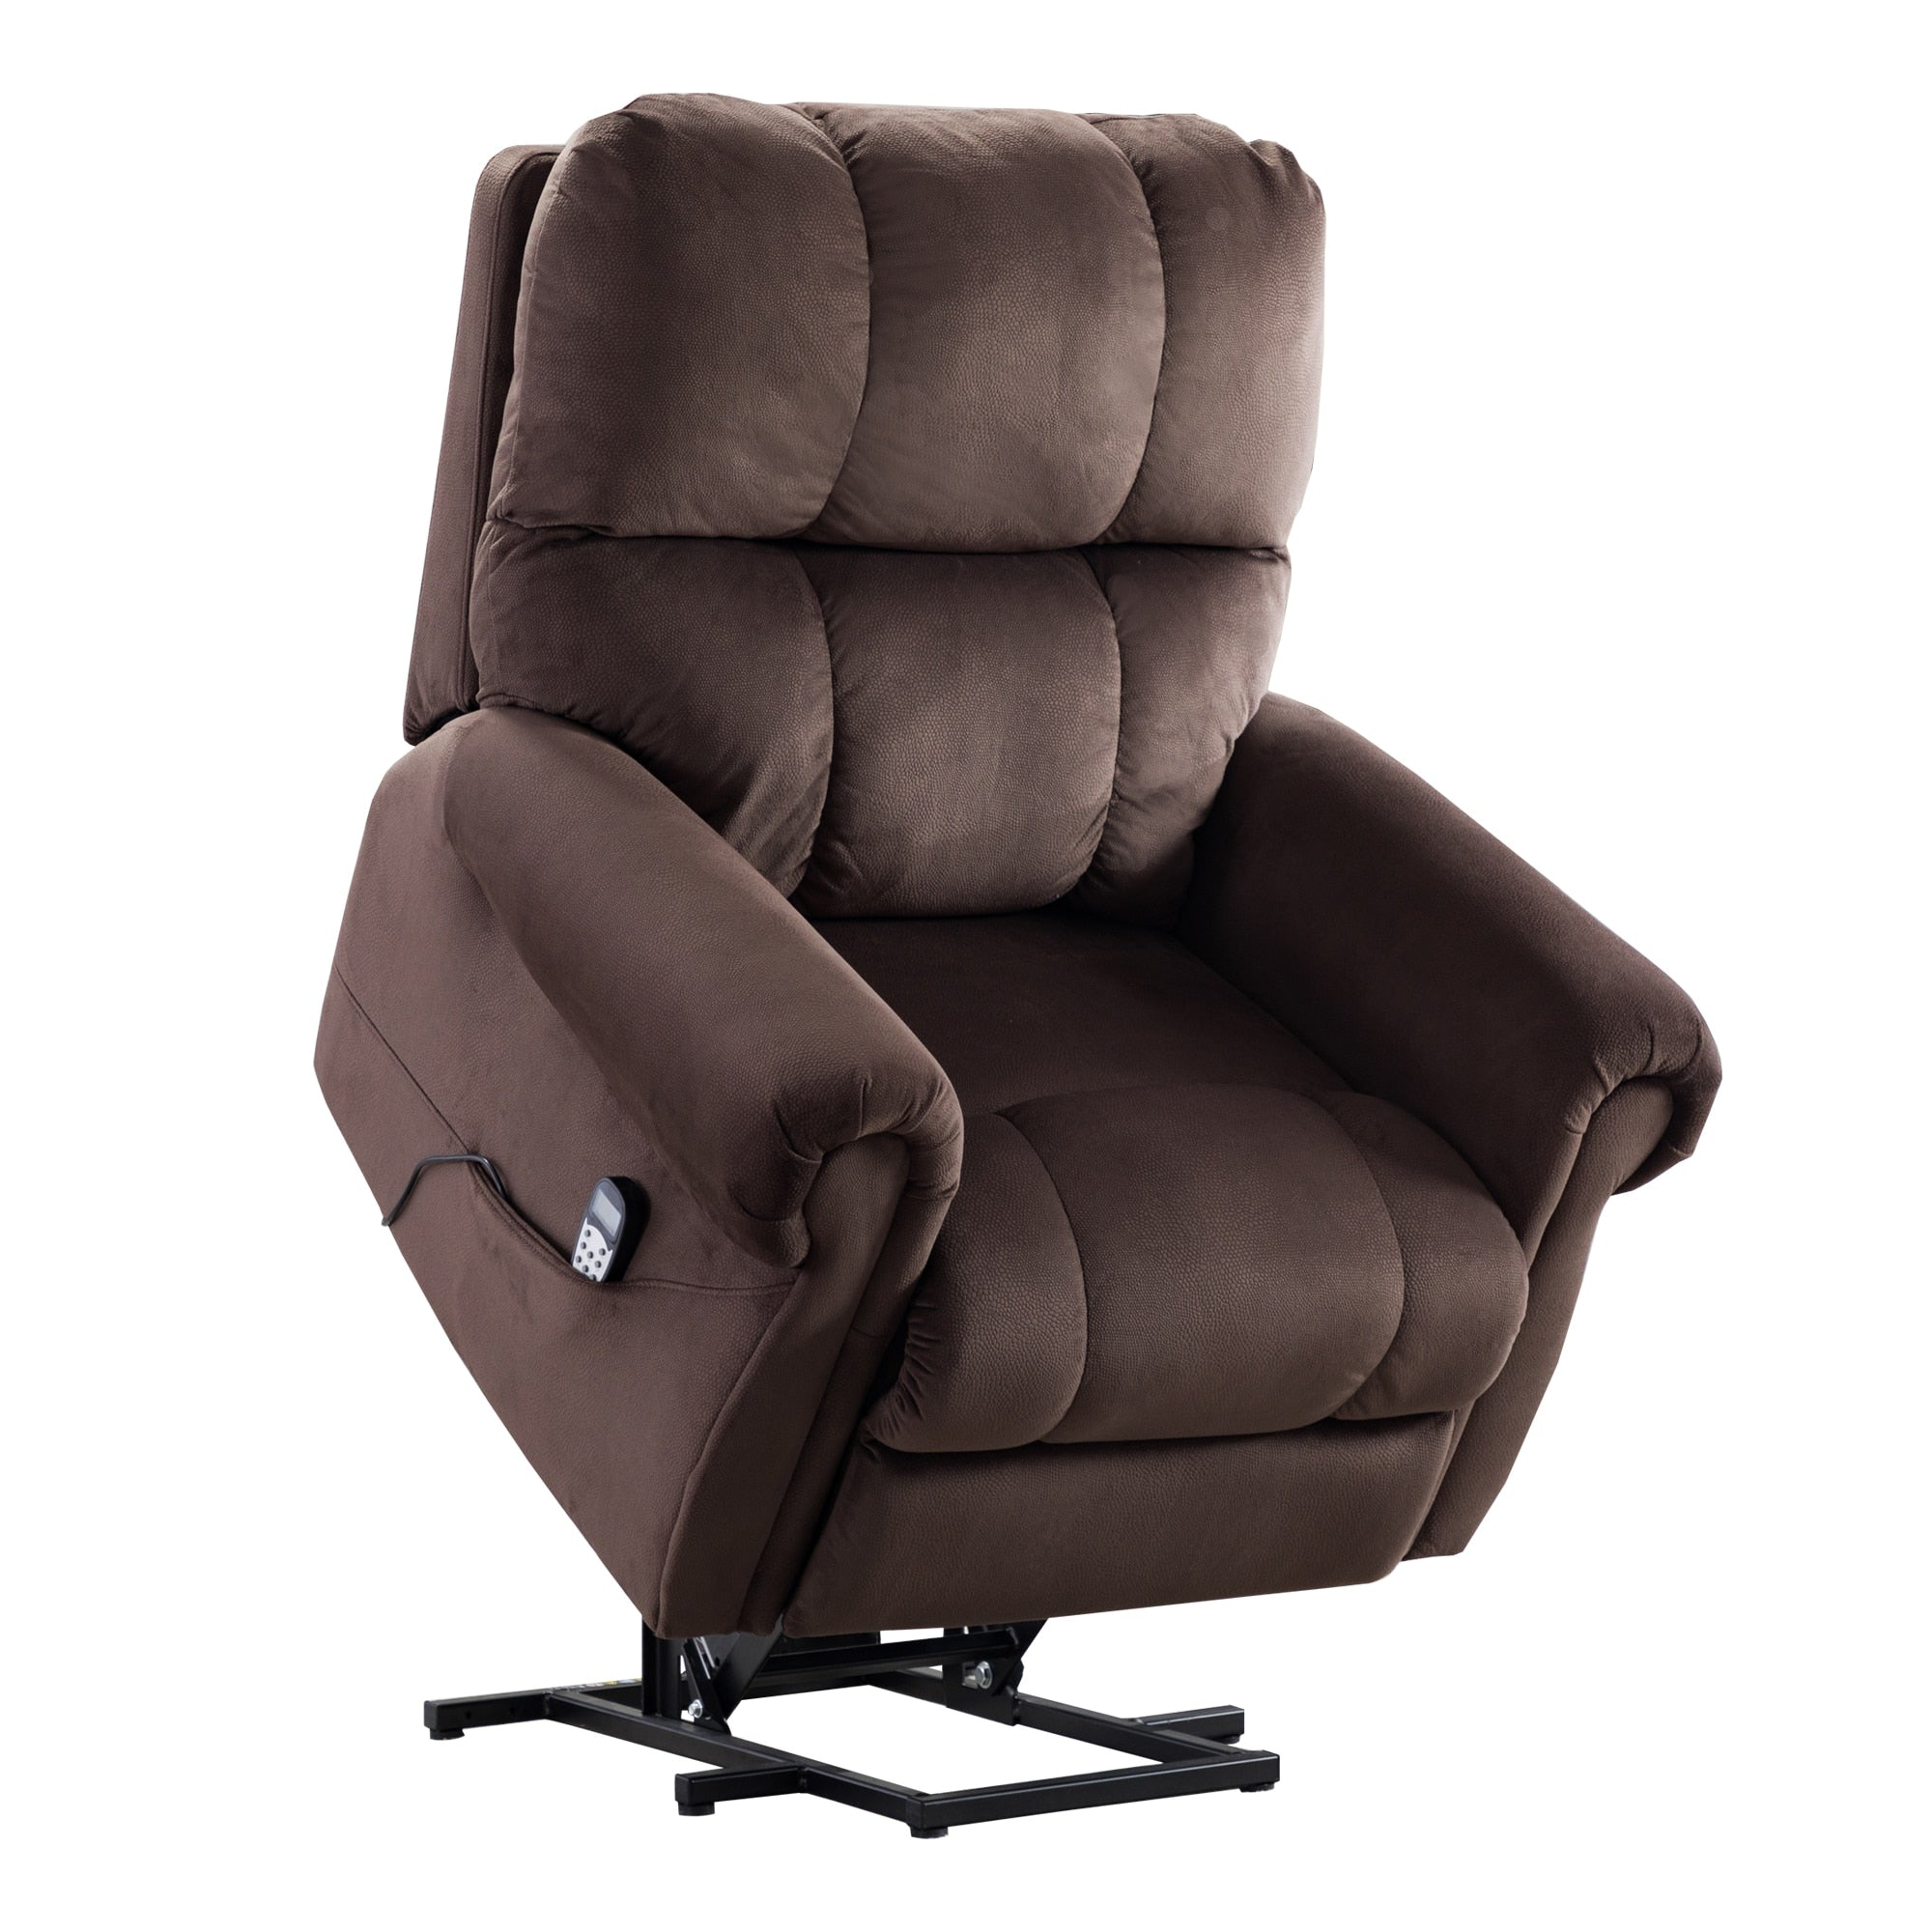 Premium Electric lift recliner with heat therapy and massage suitable for the elderly heavy recliner with padded arms Massage Sofa | The Brand Decò